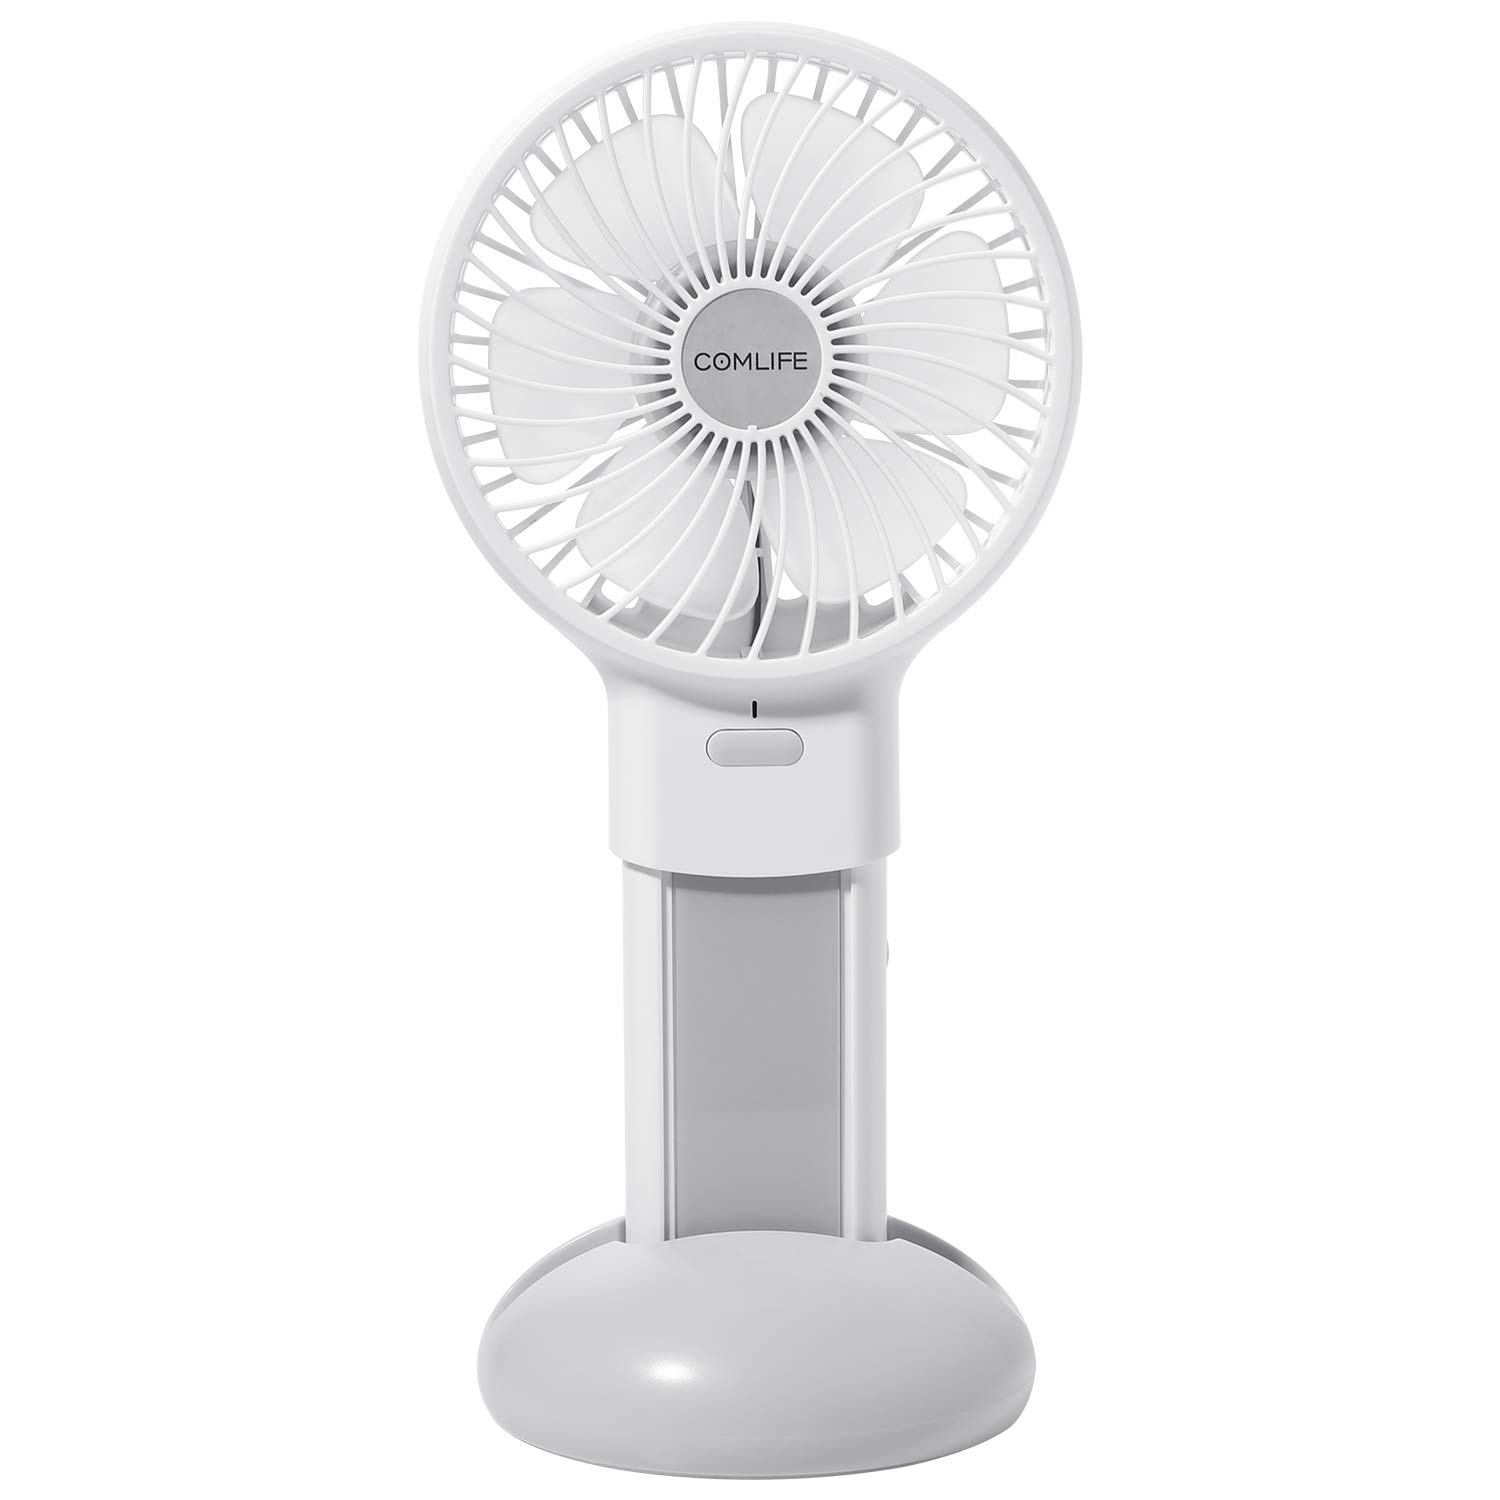 COMLIFE 5200mAh Battery Operated Clip On Fan, Quiet Stroller Fan, Mosquito-Repellent/Aroma Diffuser Function, 4 Speeds, 360 Degree Rotation, Powerful Airflow for Camping, Office, Car atf1plus